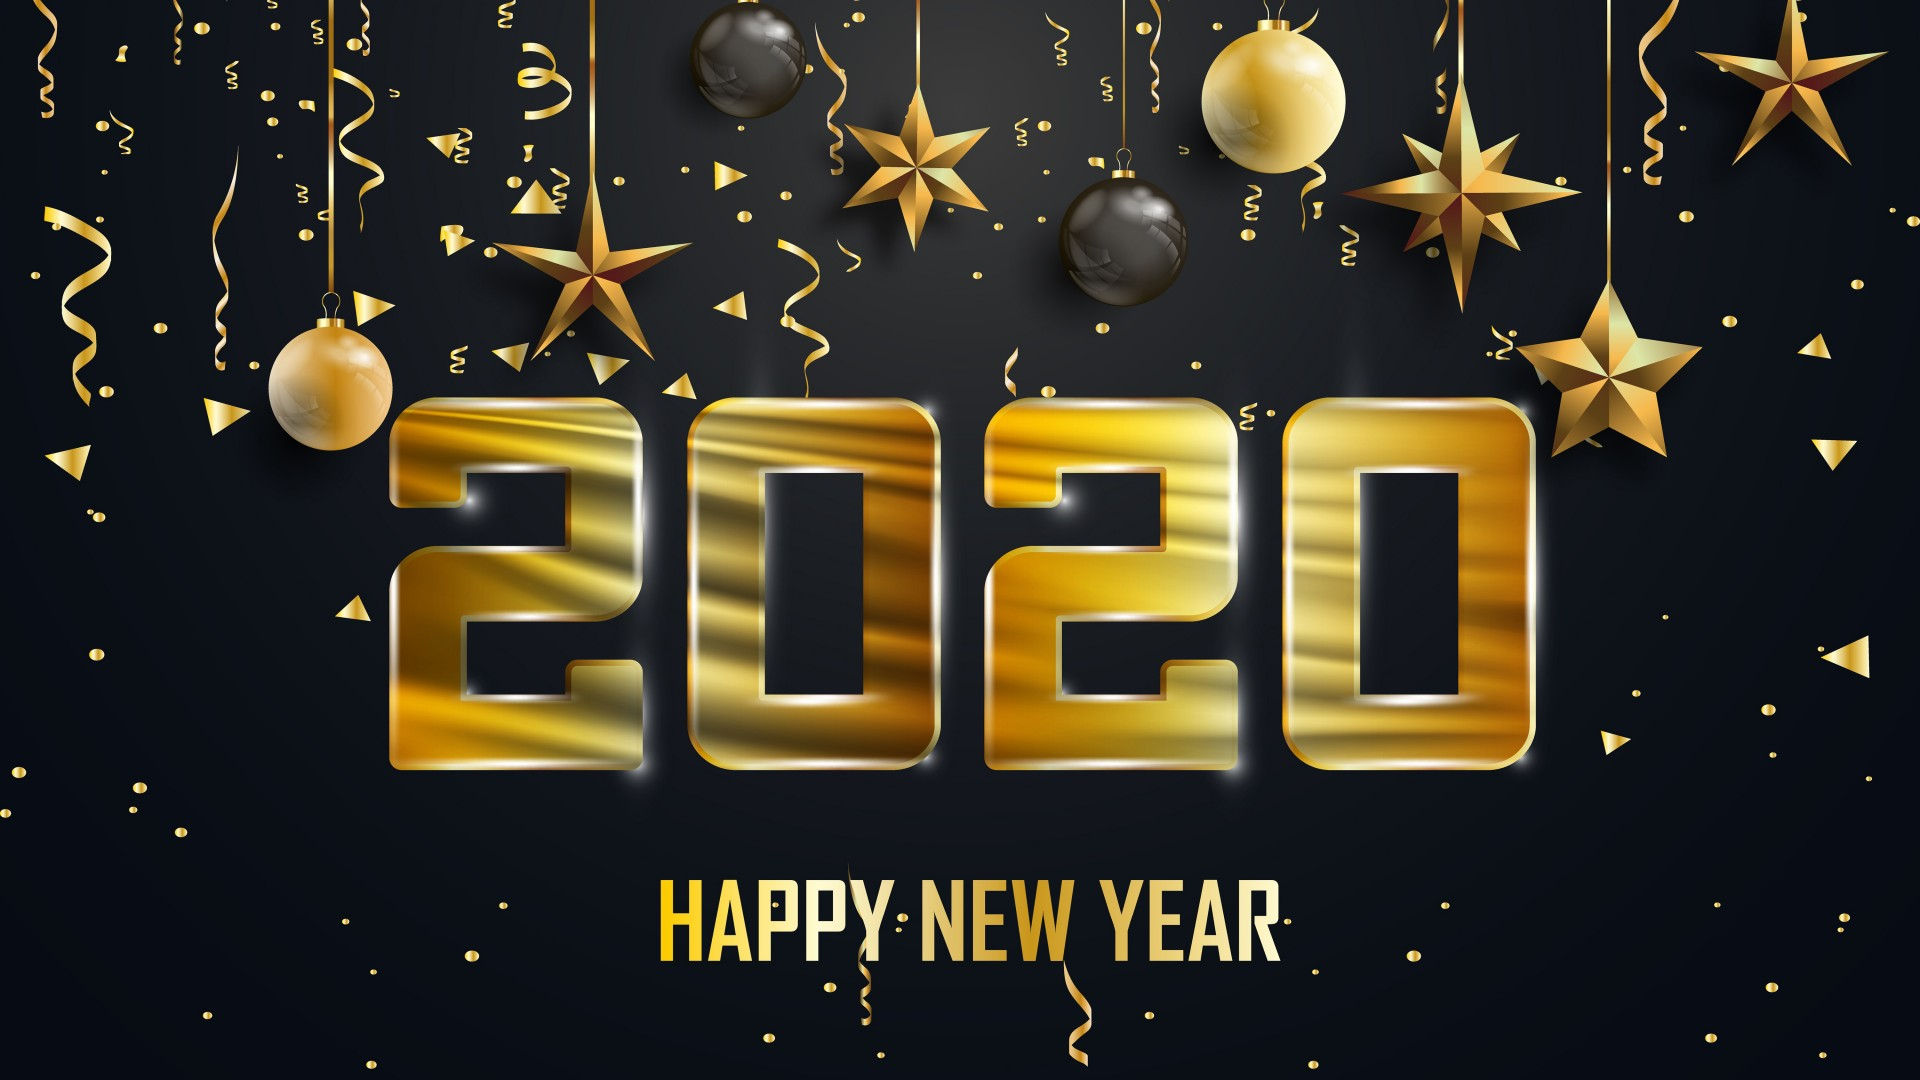 20 Happy New Year 2020 HD Wallpapers for Desktop 1920x1080